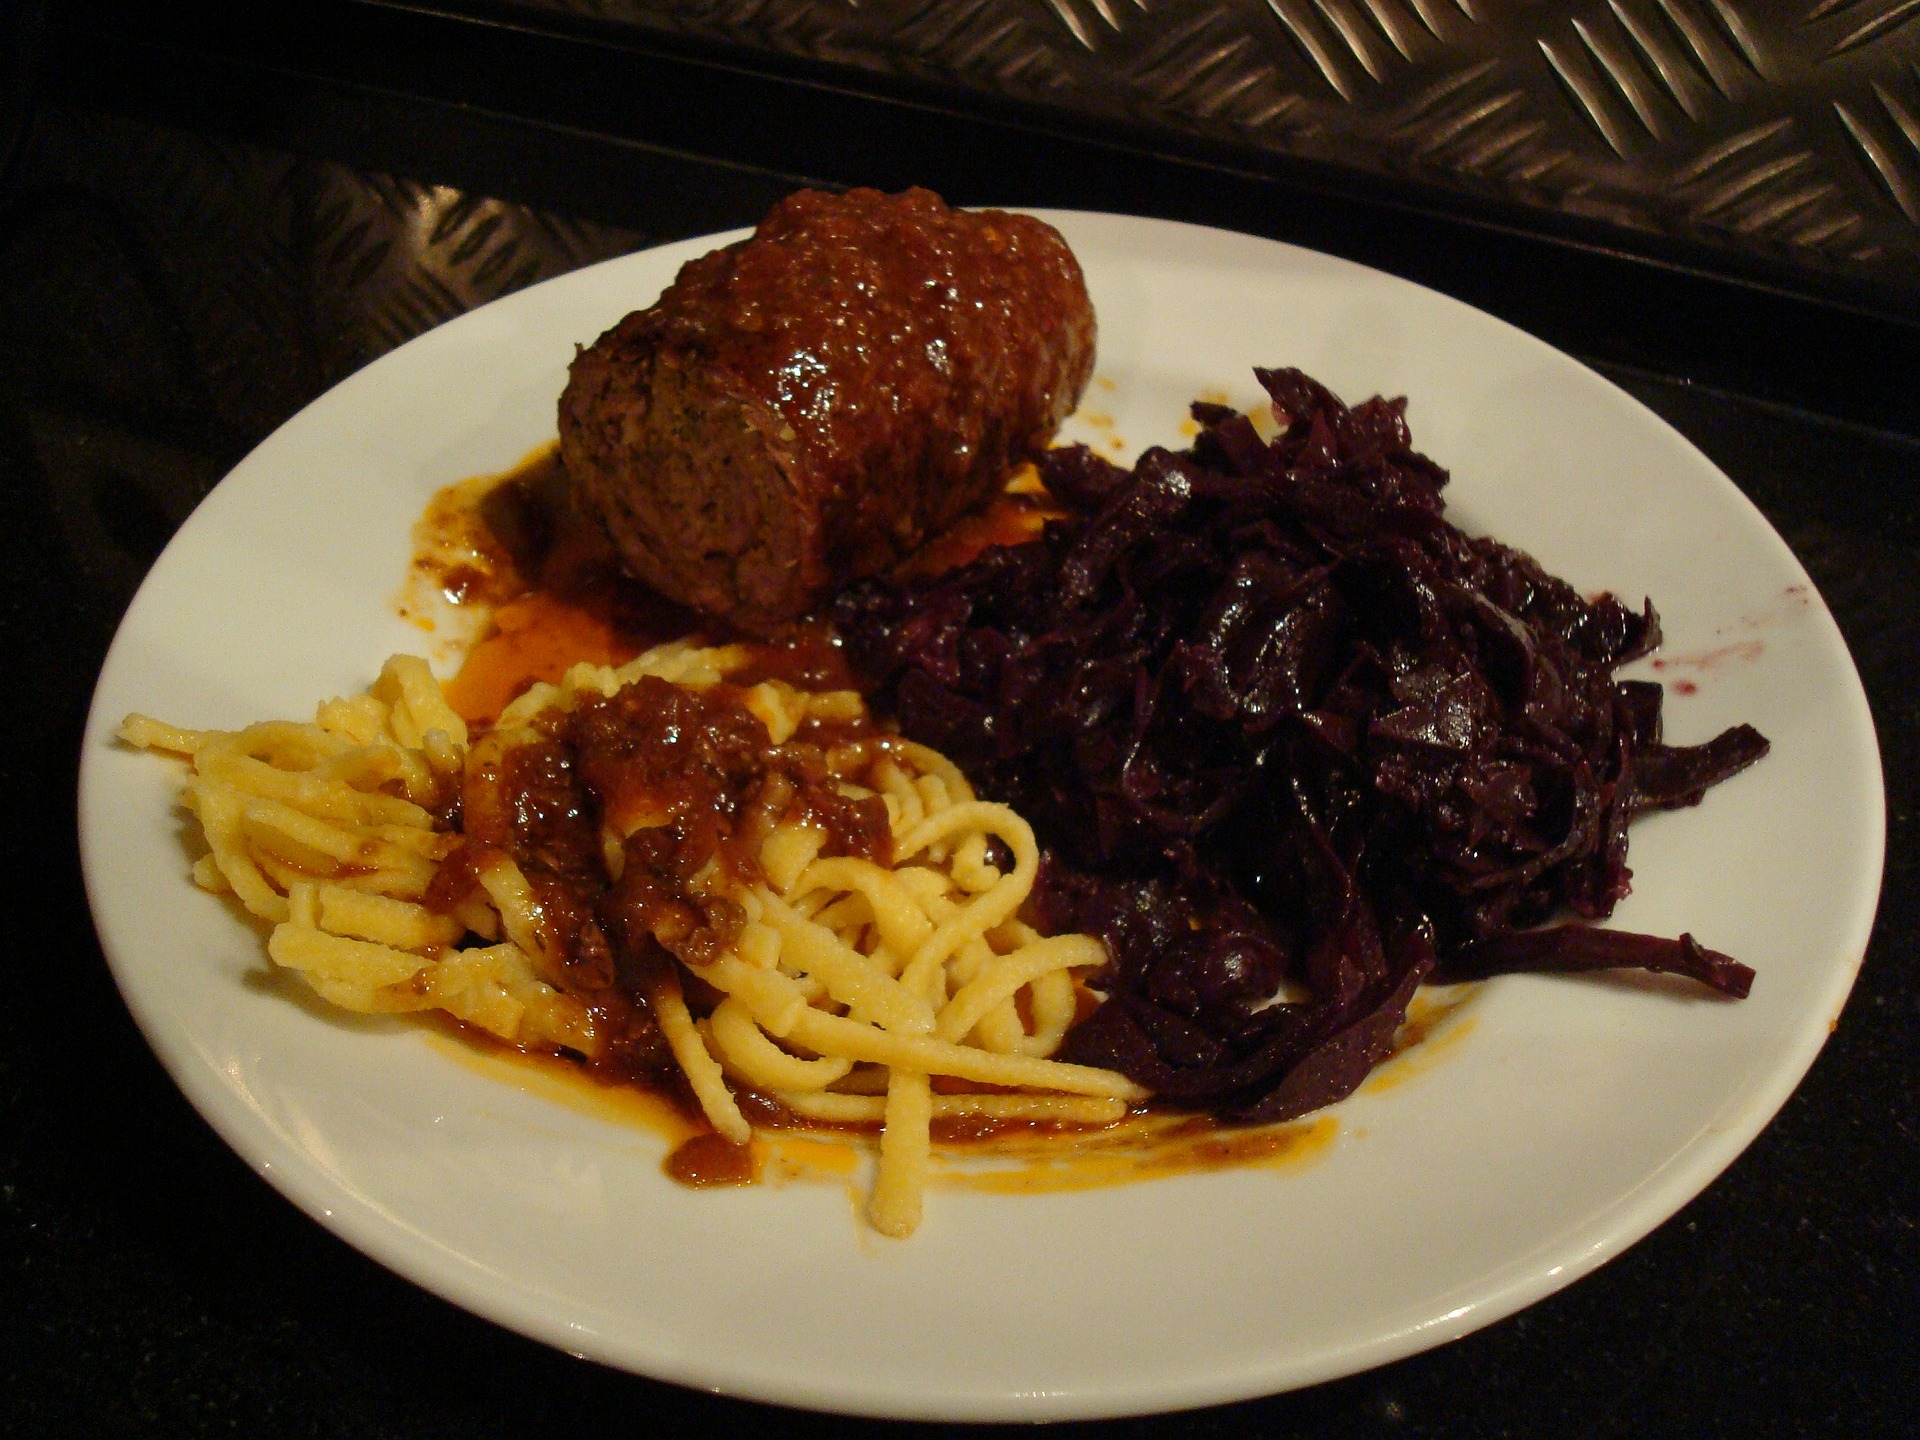 Most meats are served with a healthy portion of fermented cabbage